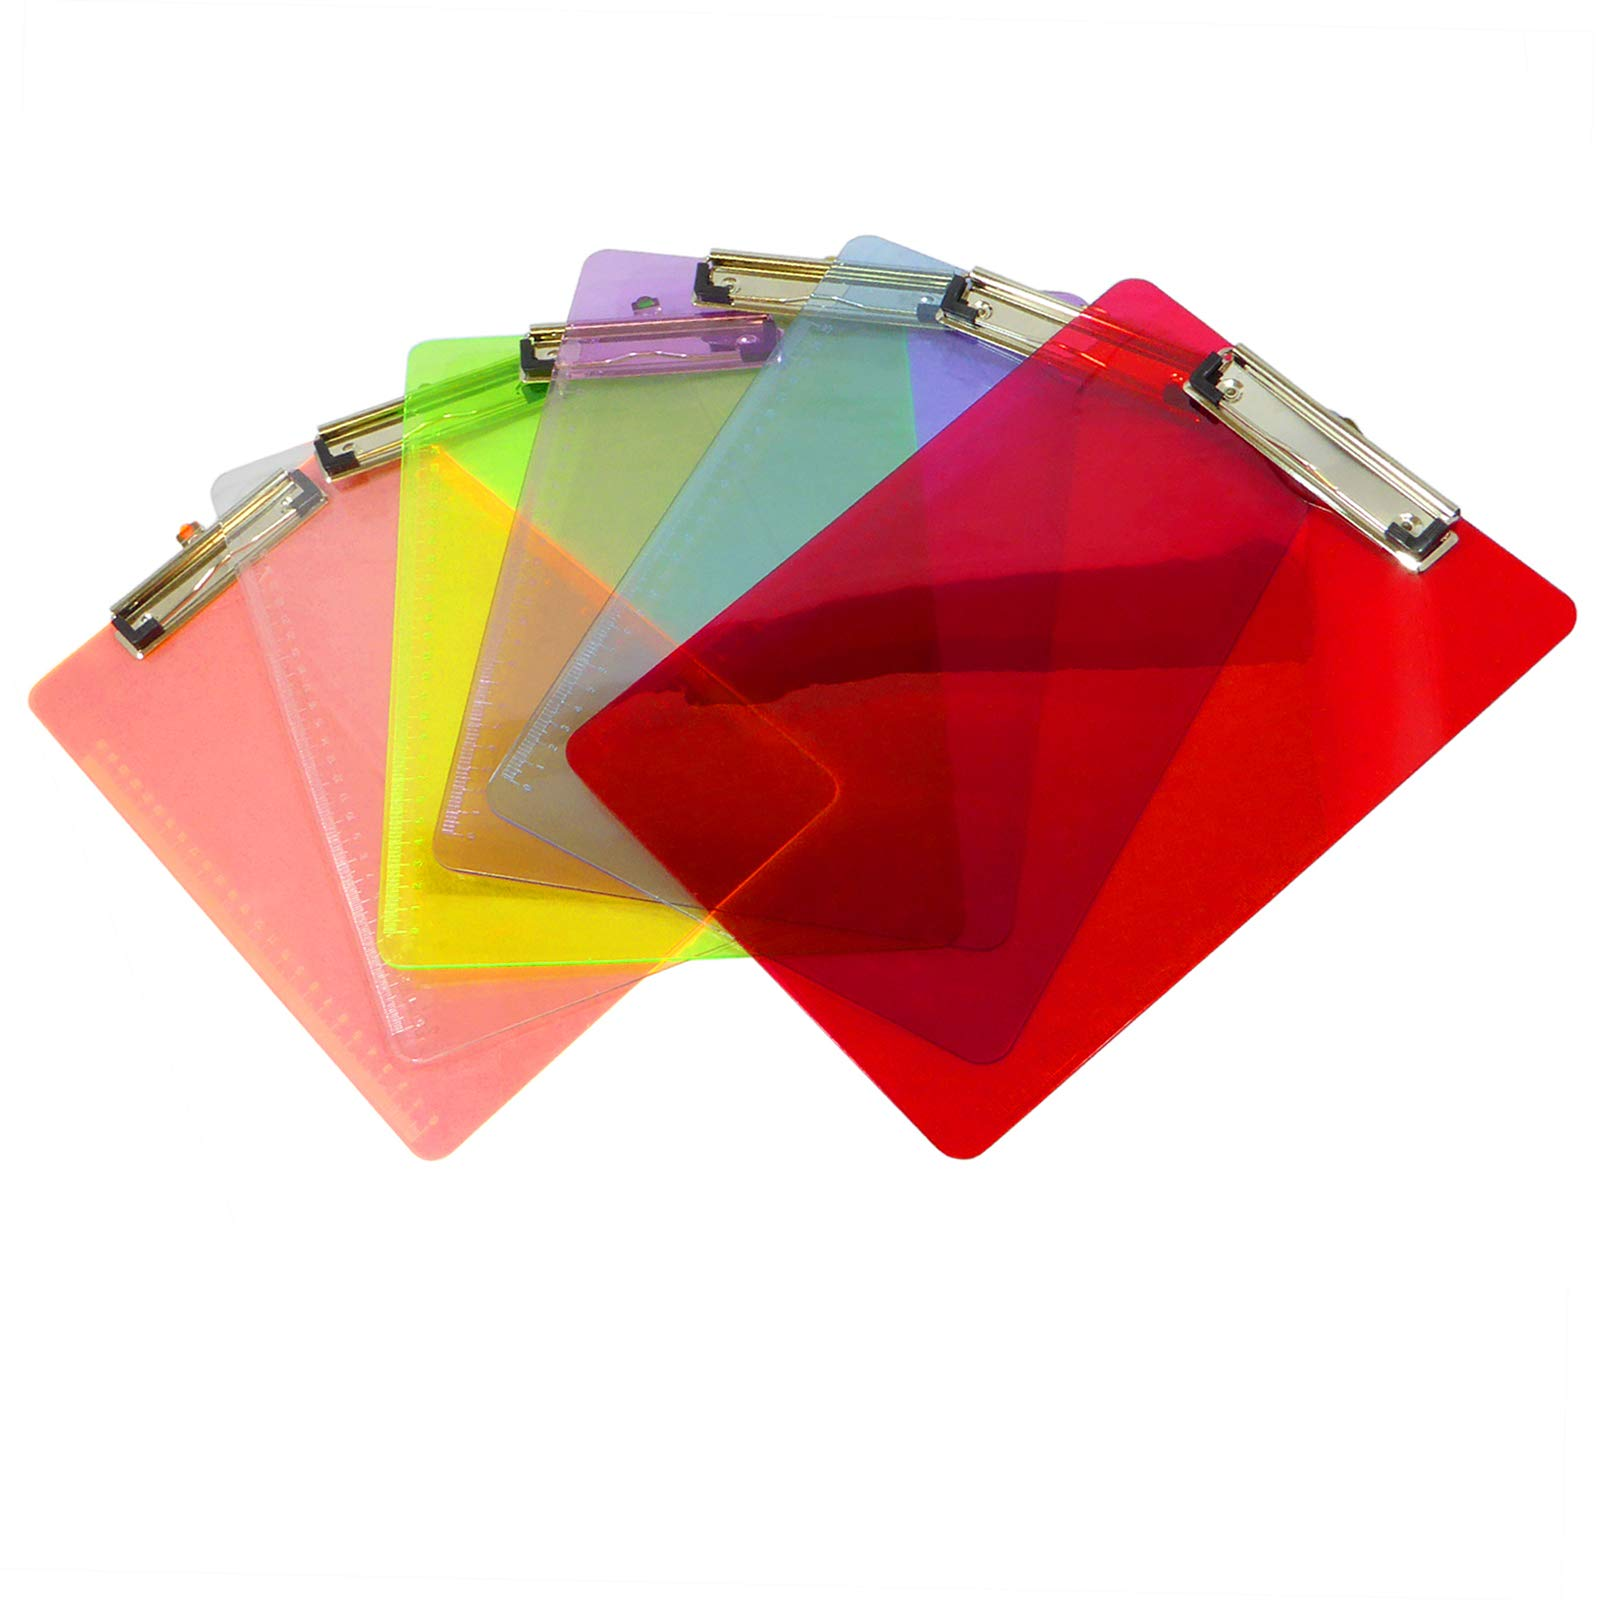 Colorful Clipboards with Ruler inches and Centimeter Scales | Multi Color Fun Pack | Transparent and Standard Size Low Profile Clip | Office, School, Outside Use (6 Pack)